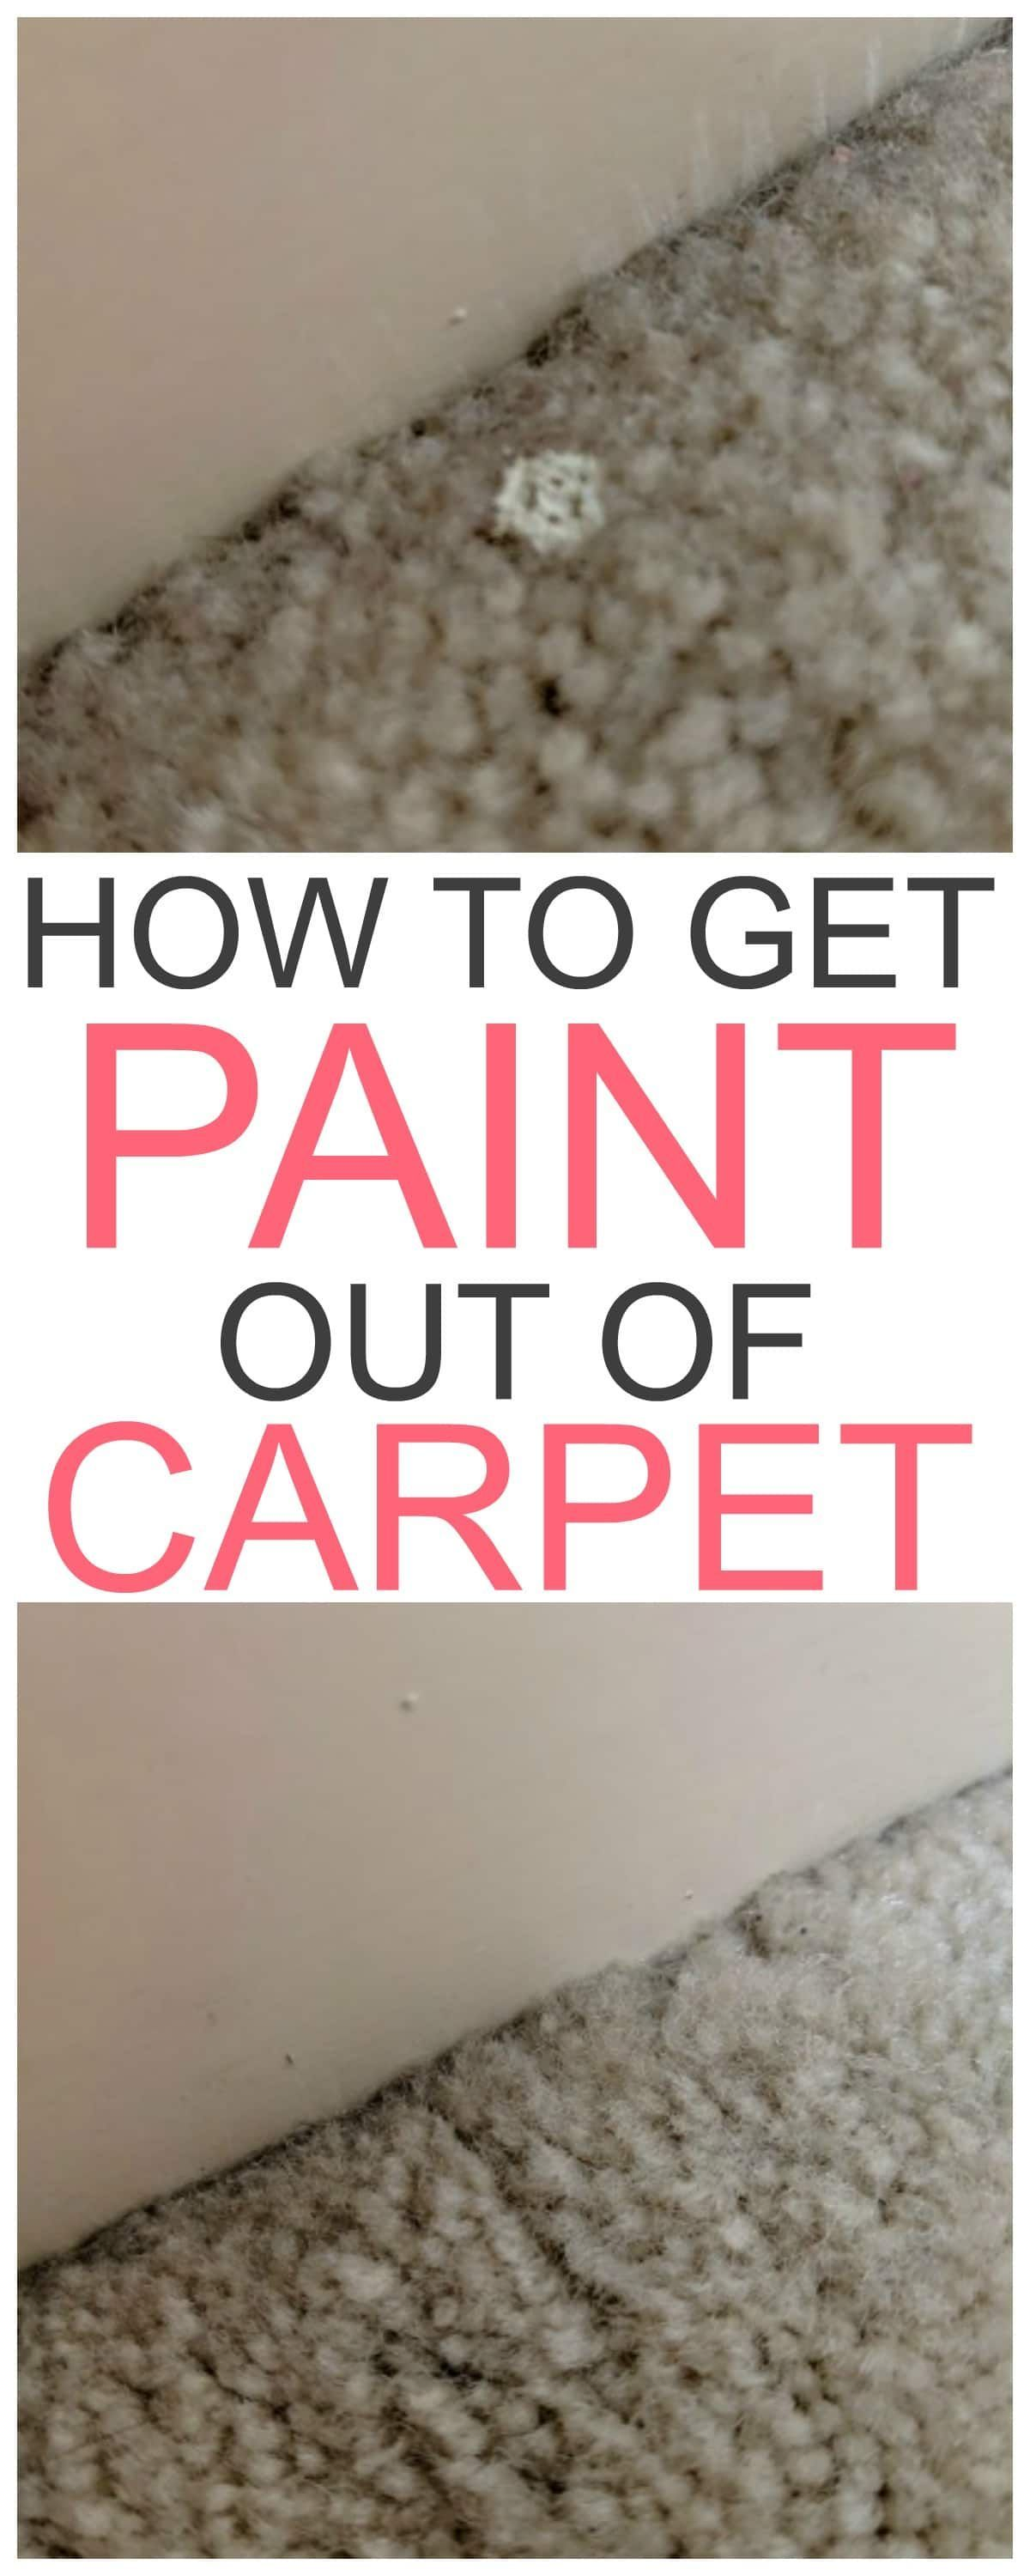 How to get paint out of carpet cleaning hacks cleaning